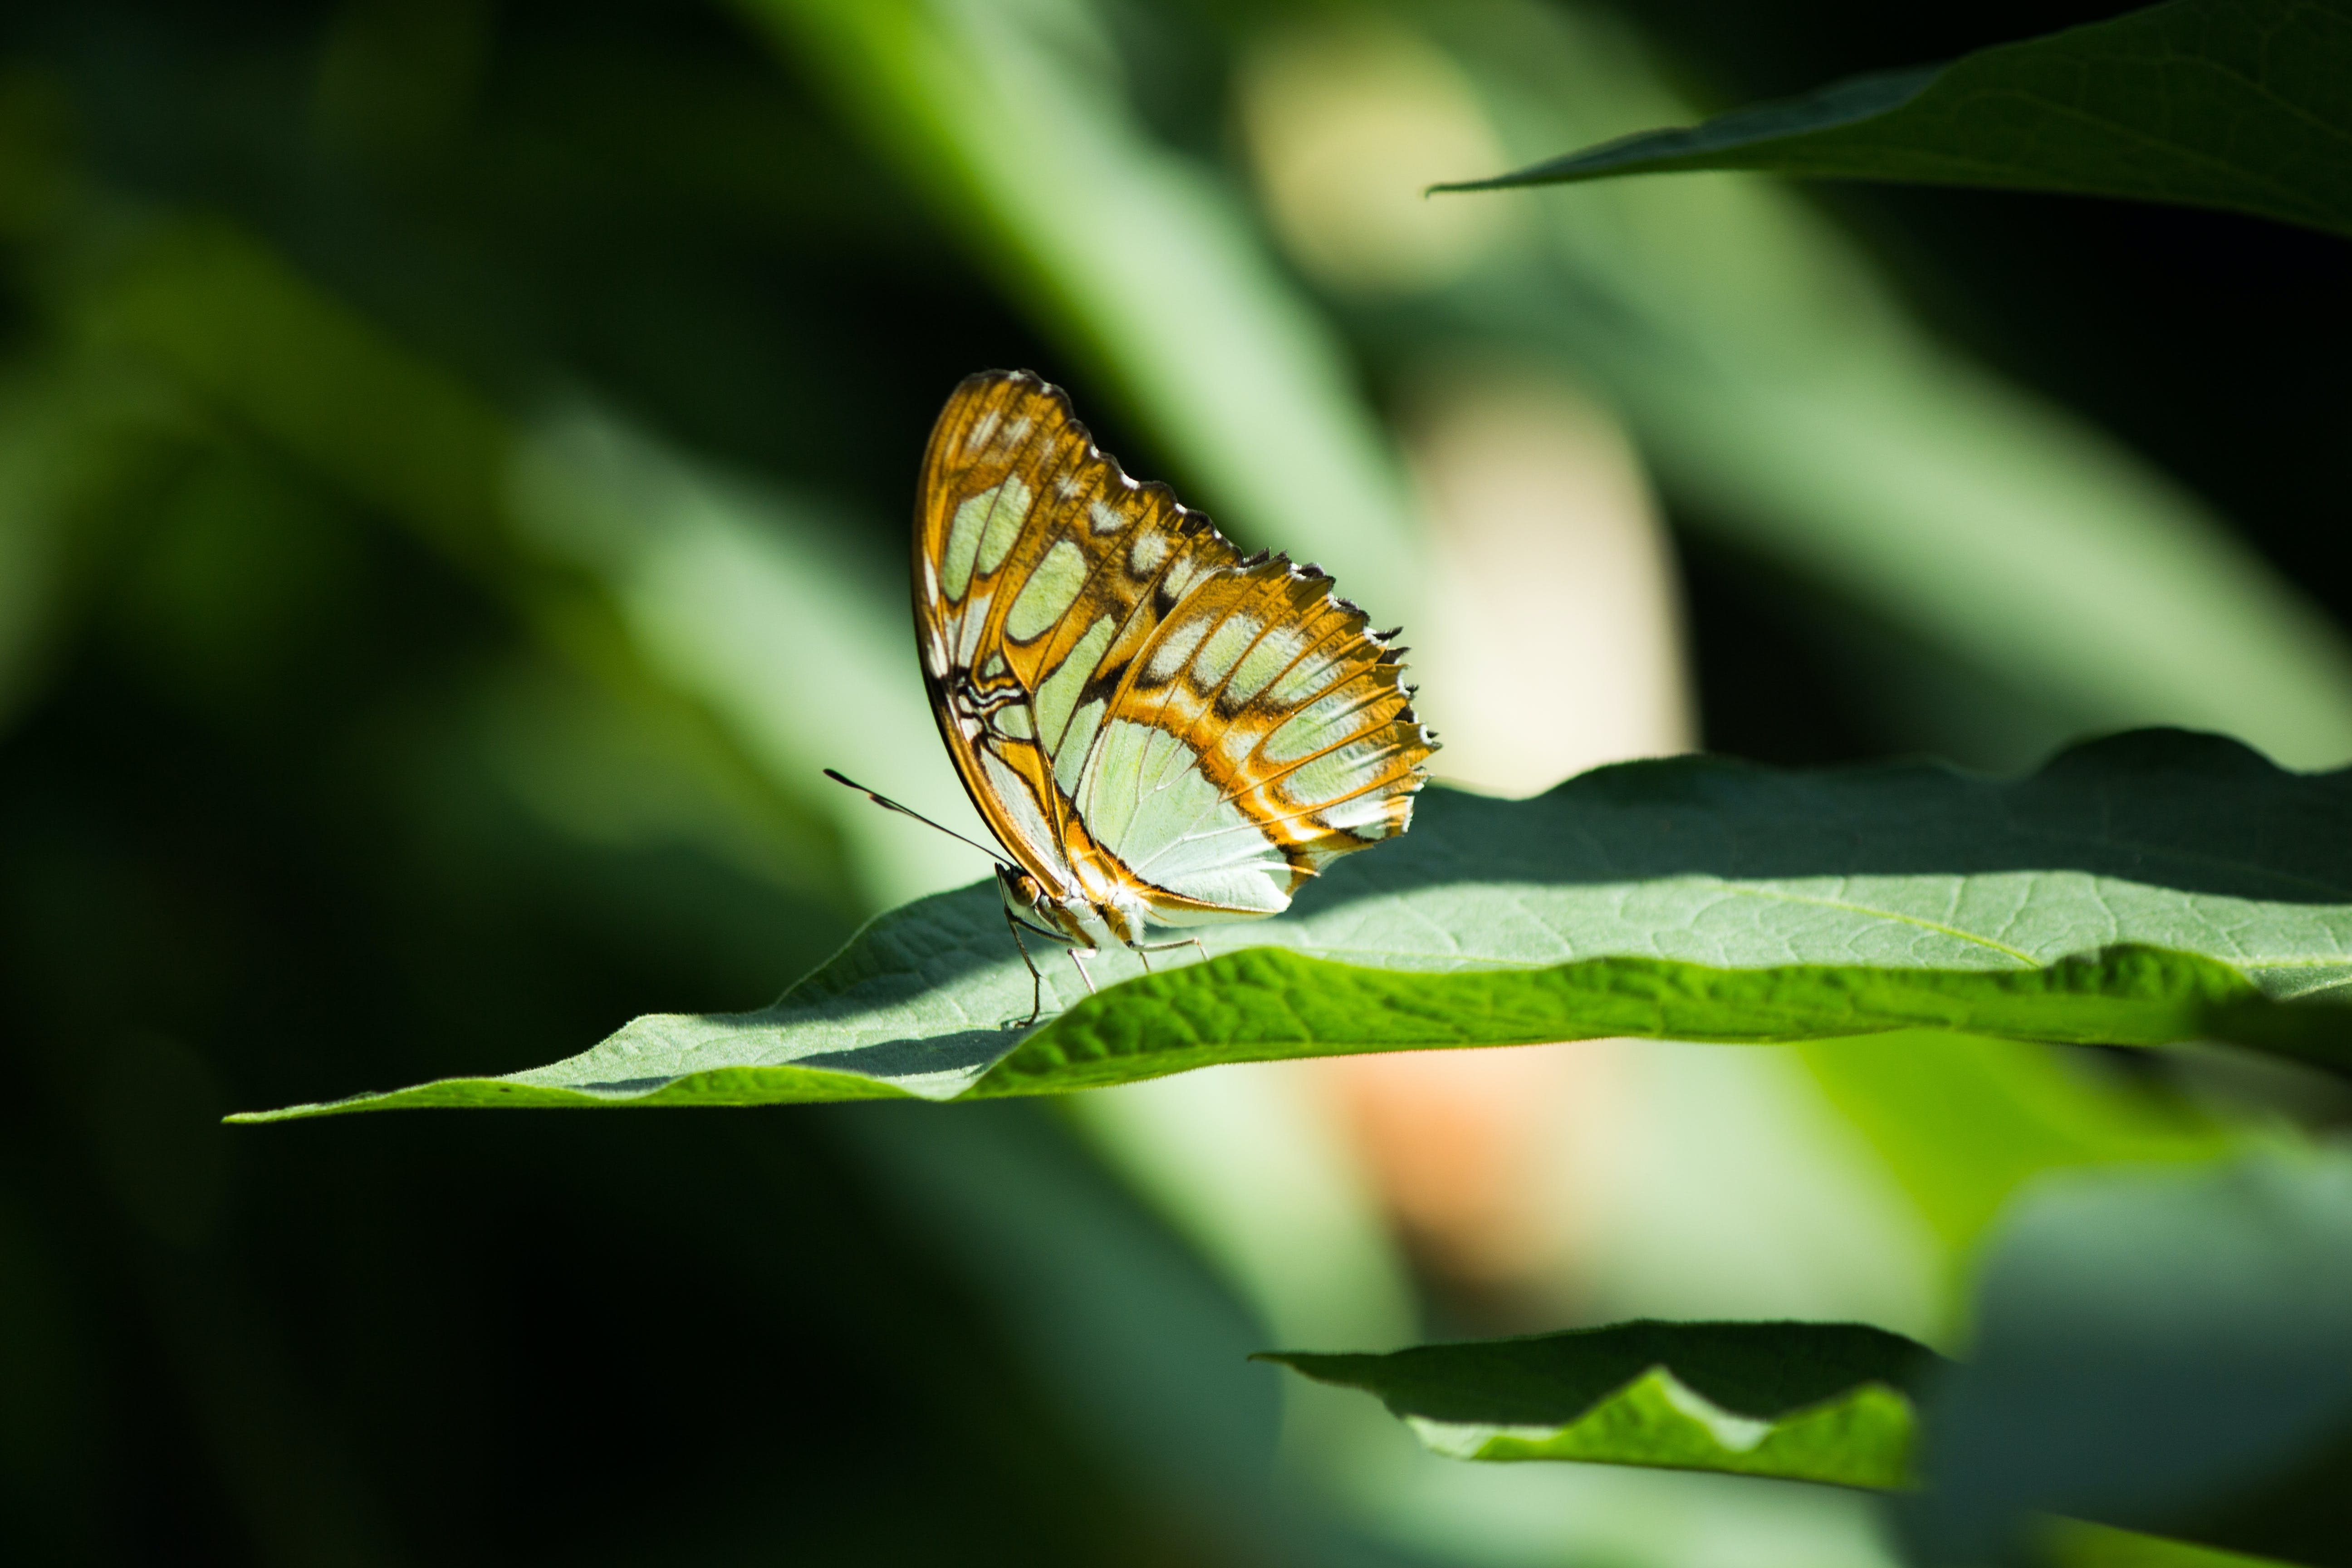 Yellow and White Butterfly on Green Leaf